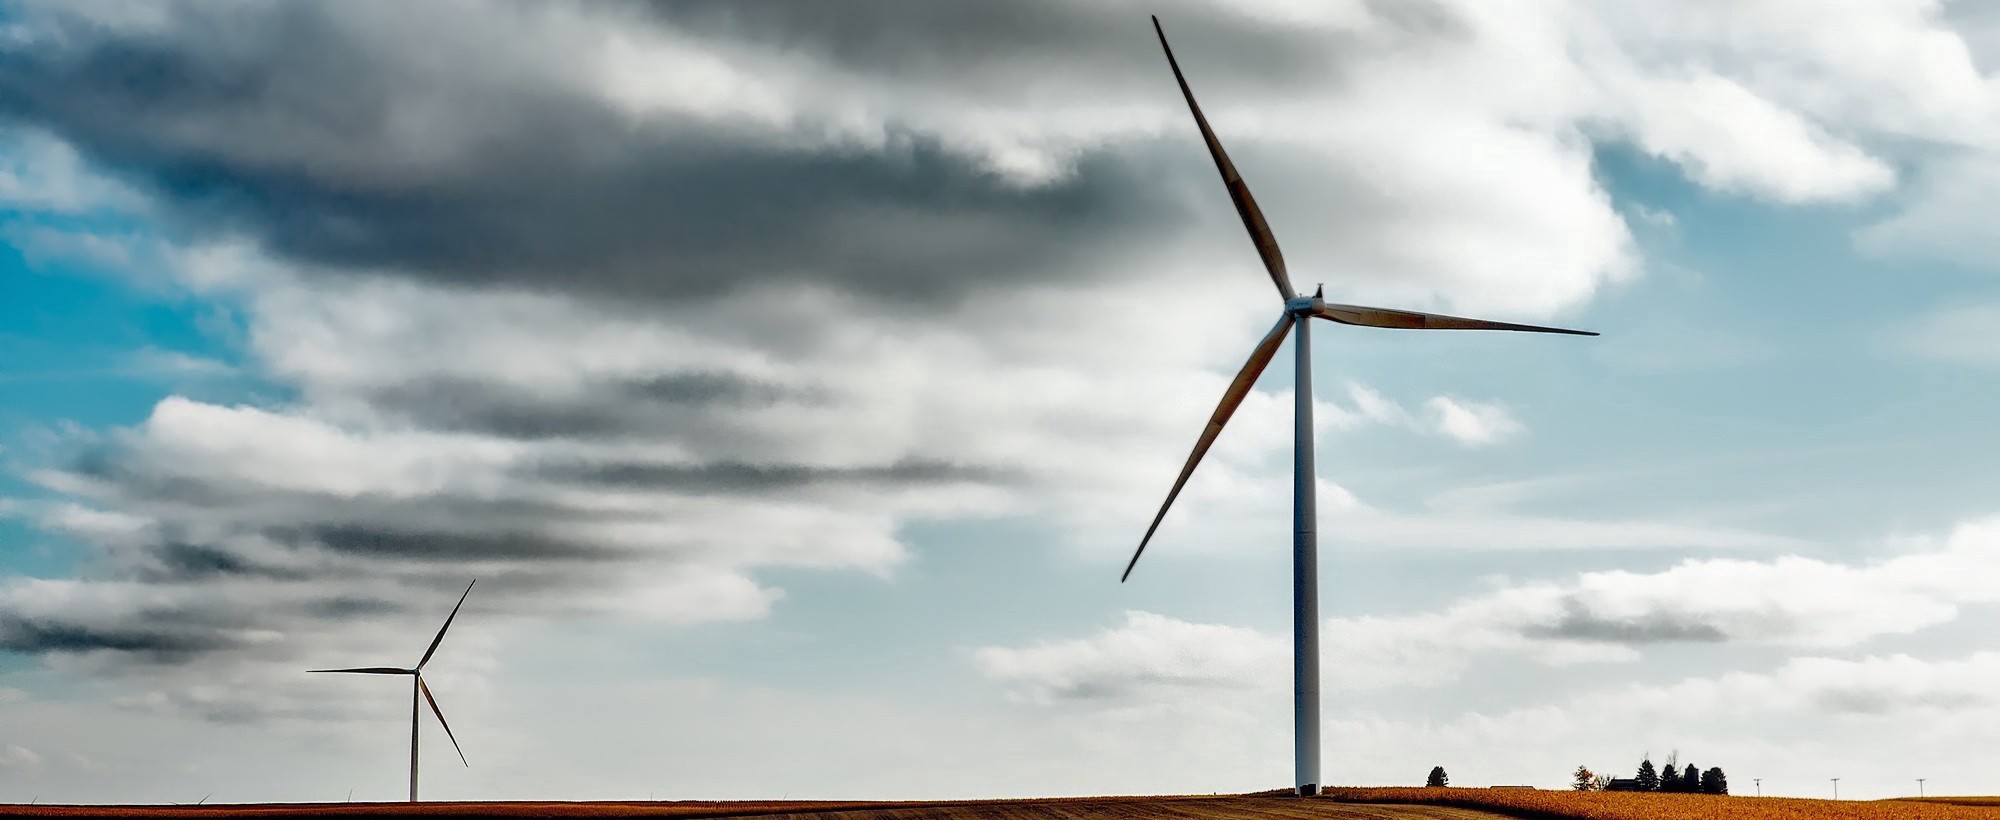 Anti-wind bill costs Ohio schools hundreds of thousands of dollars